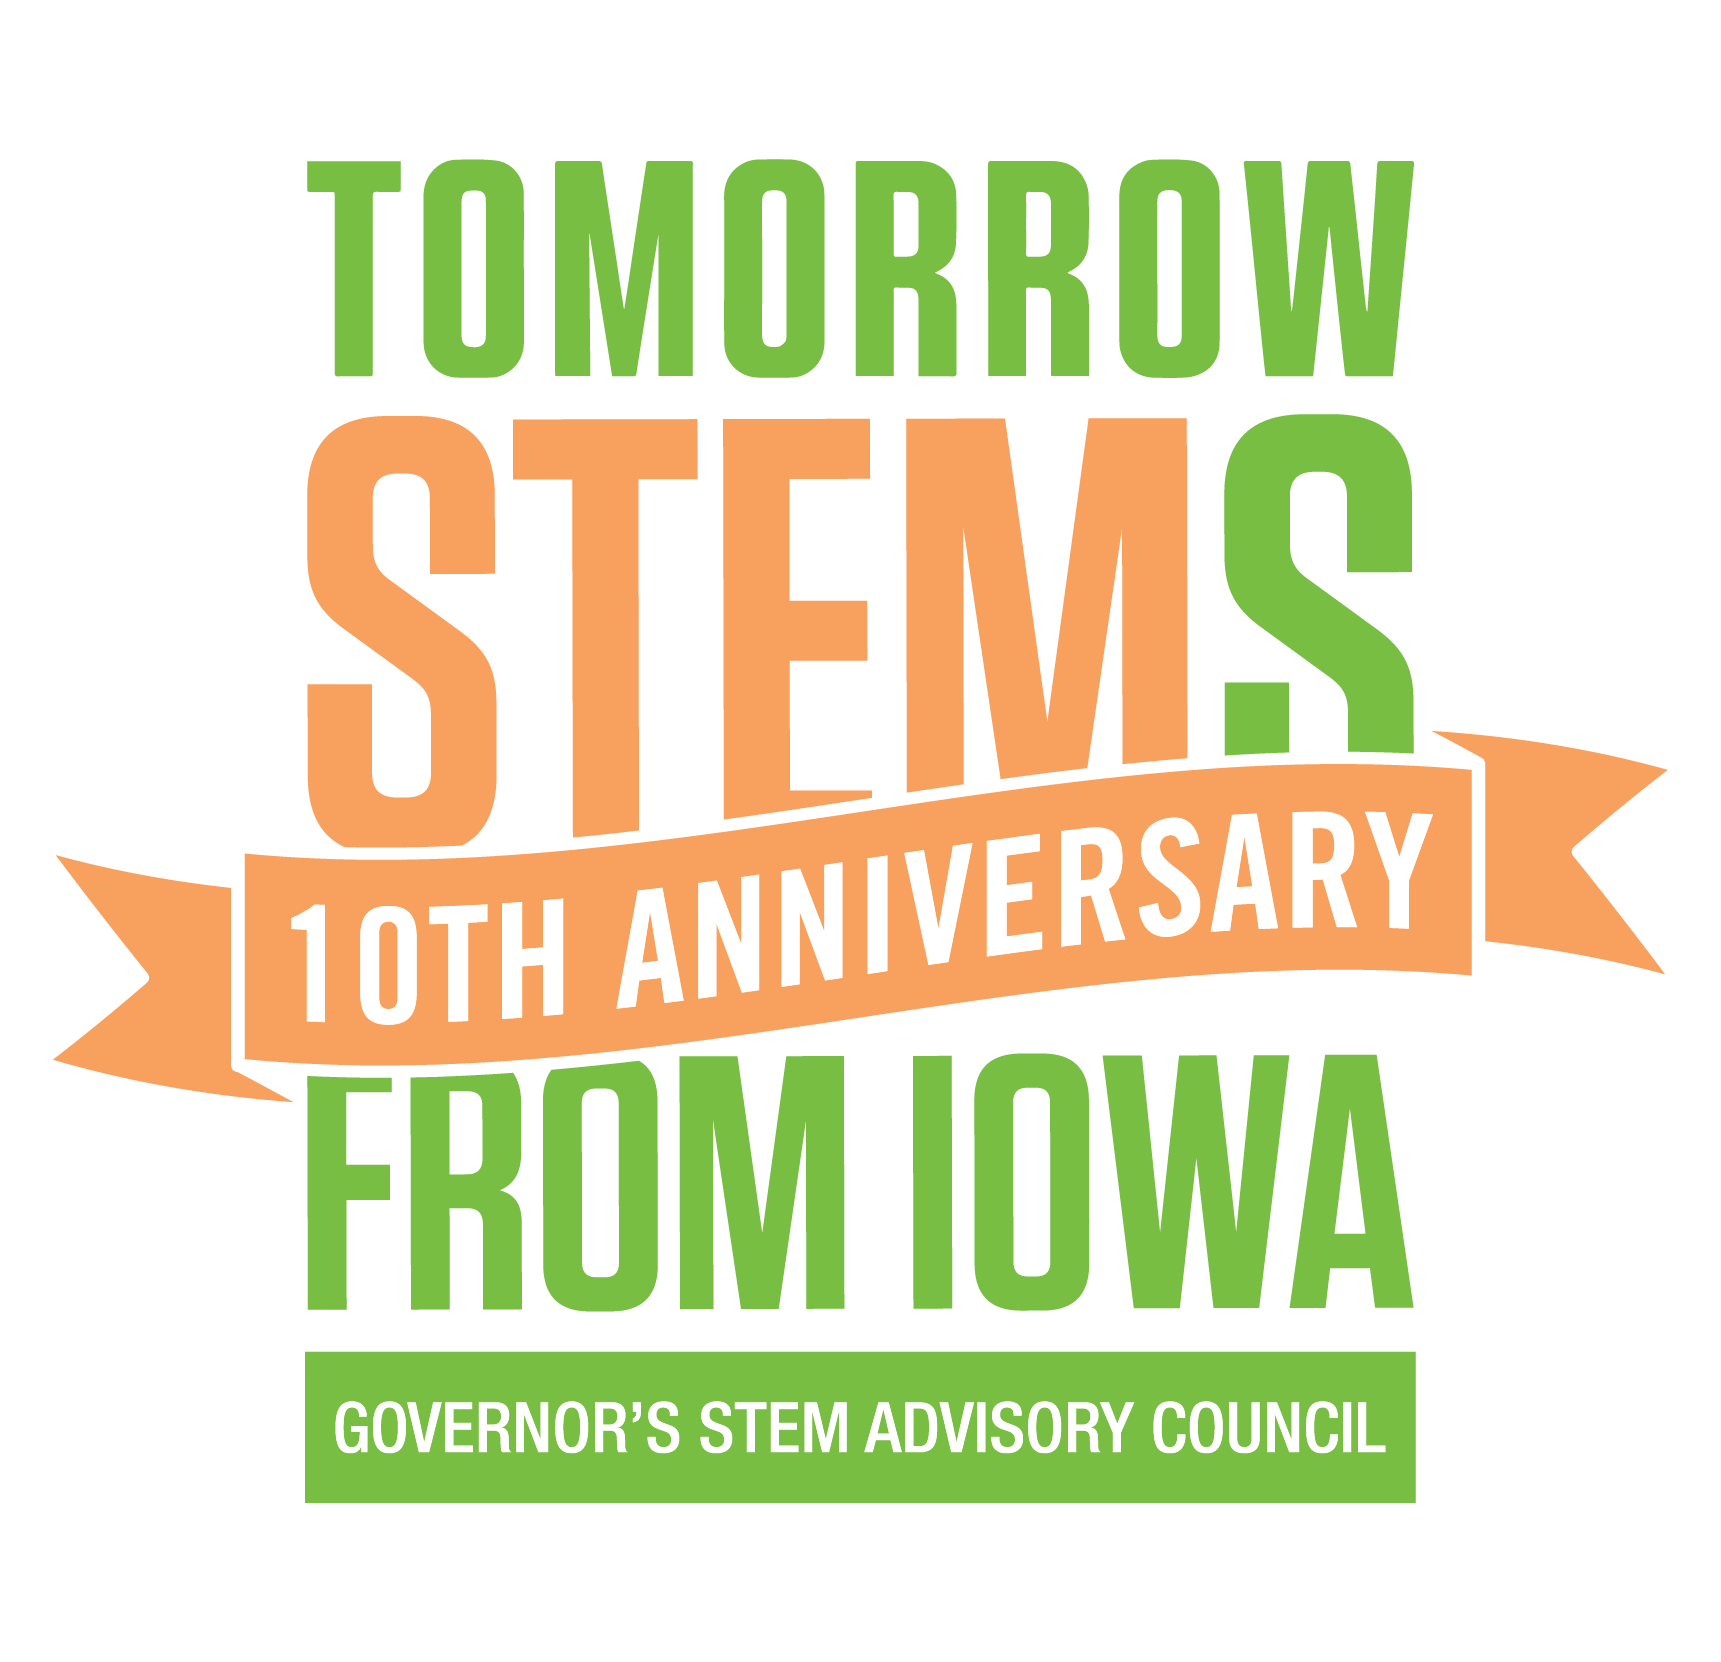 Iowa Governor's STEM Advisory Council